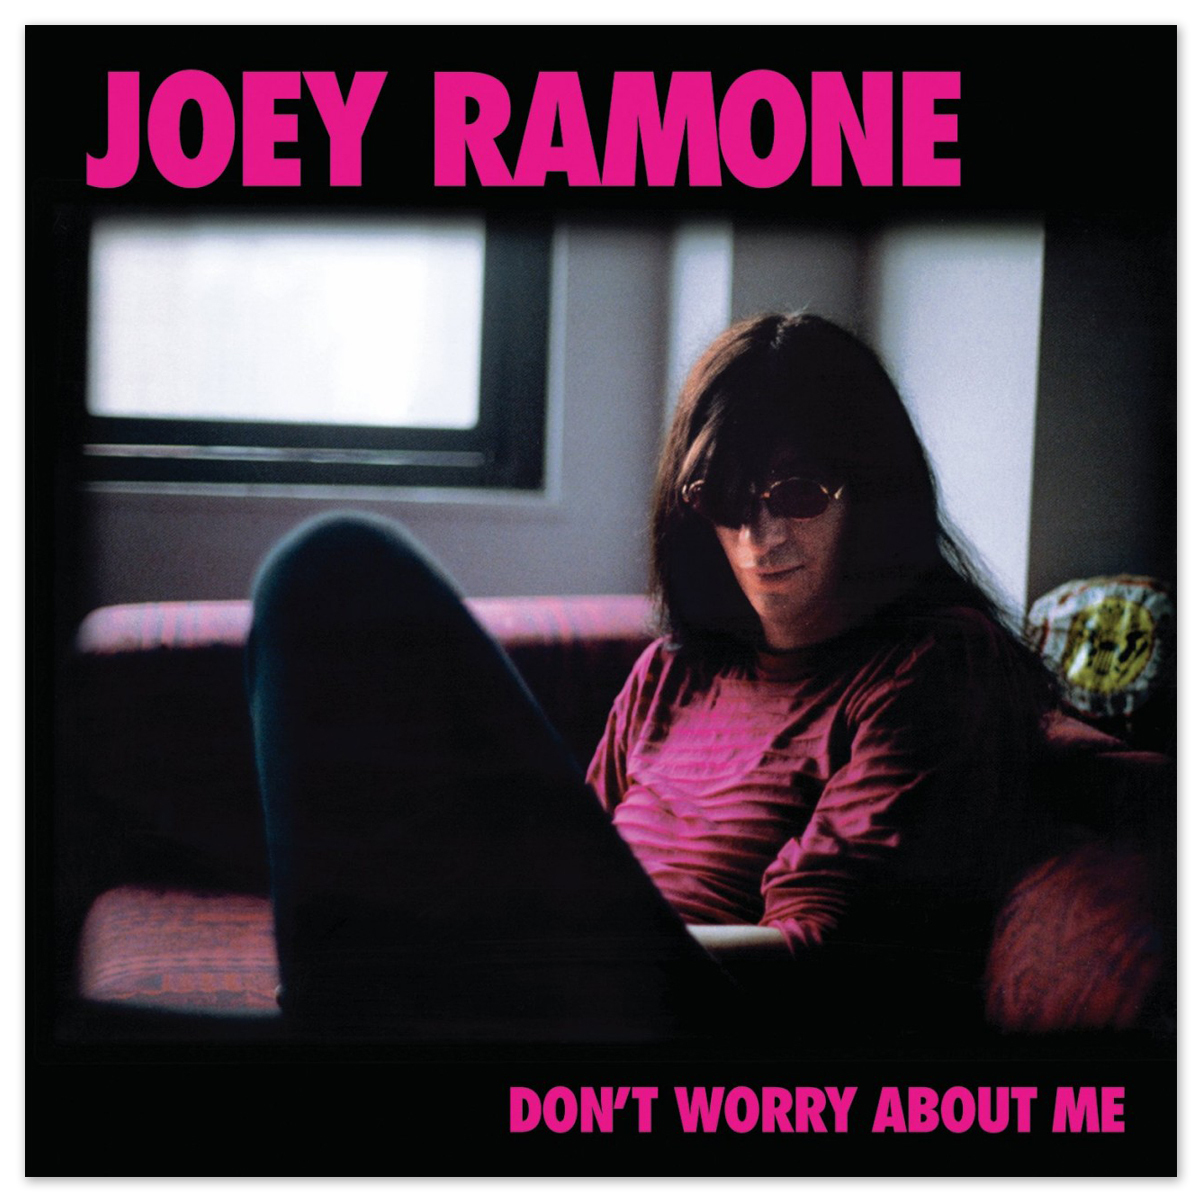 Joey Ramone Don't Worry About Me CD